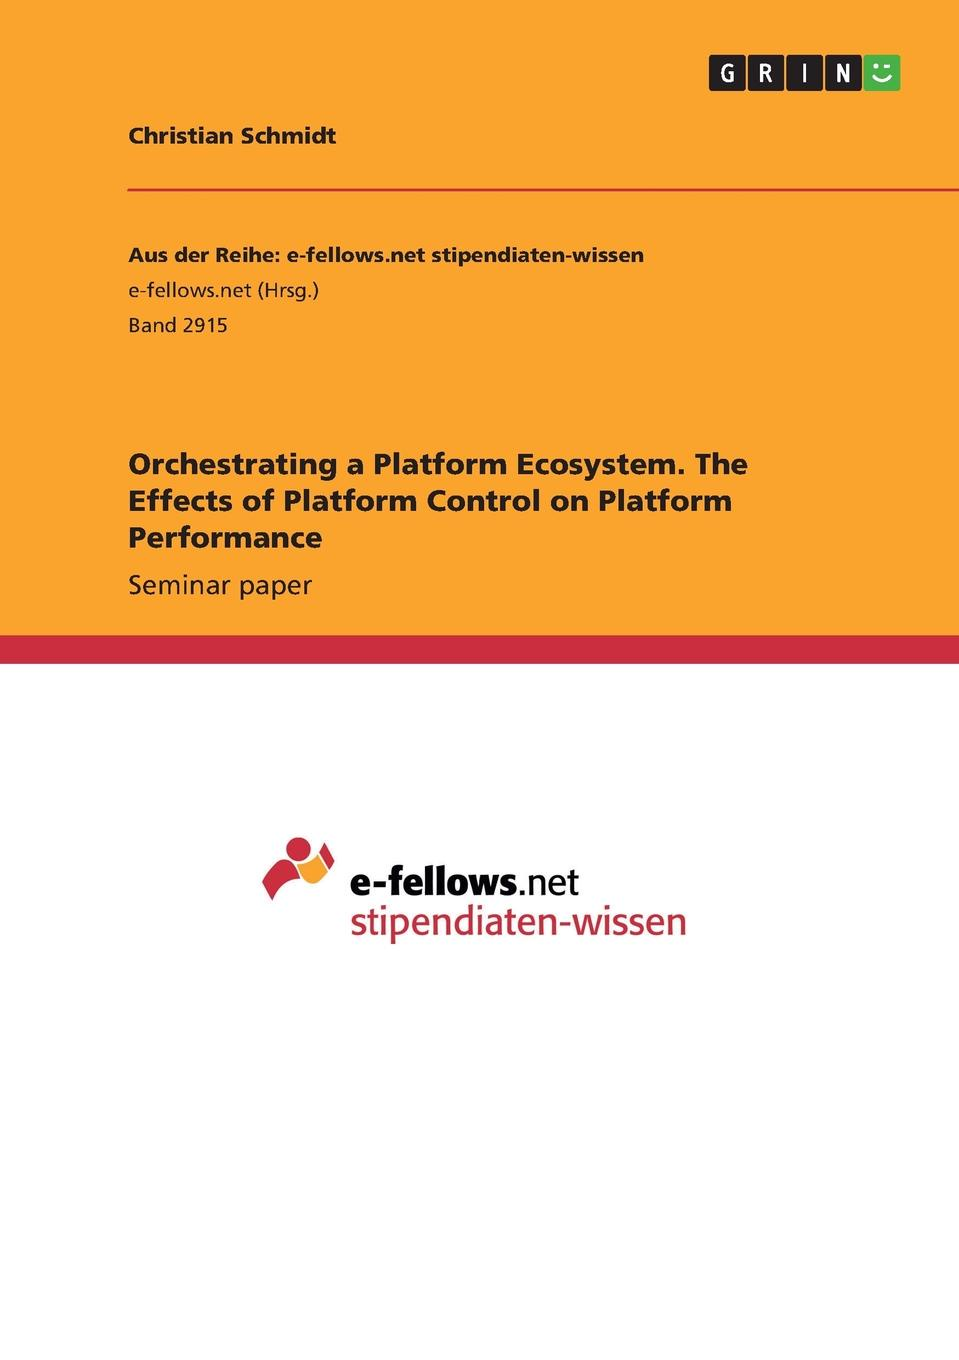 Christian Schmidt Orchestrating a Platform Ecosystem. The Effects of Platform Control on Platform Performance mahmudul hasan review of the current legal and institutional mechanisms in relation to the environment pollution control in bangladesh